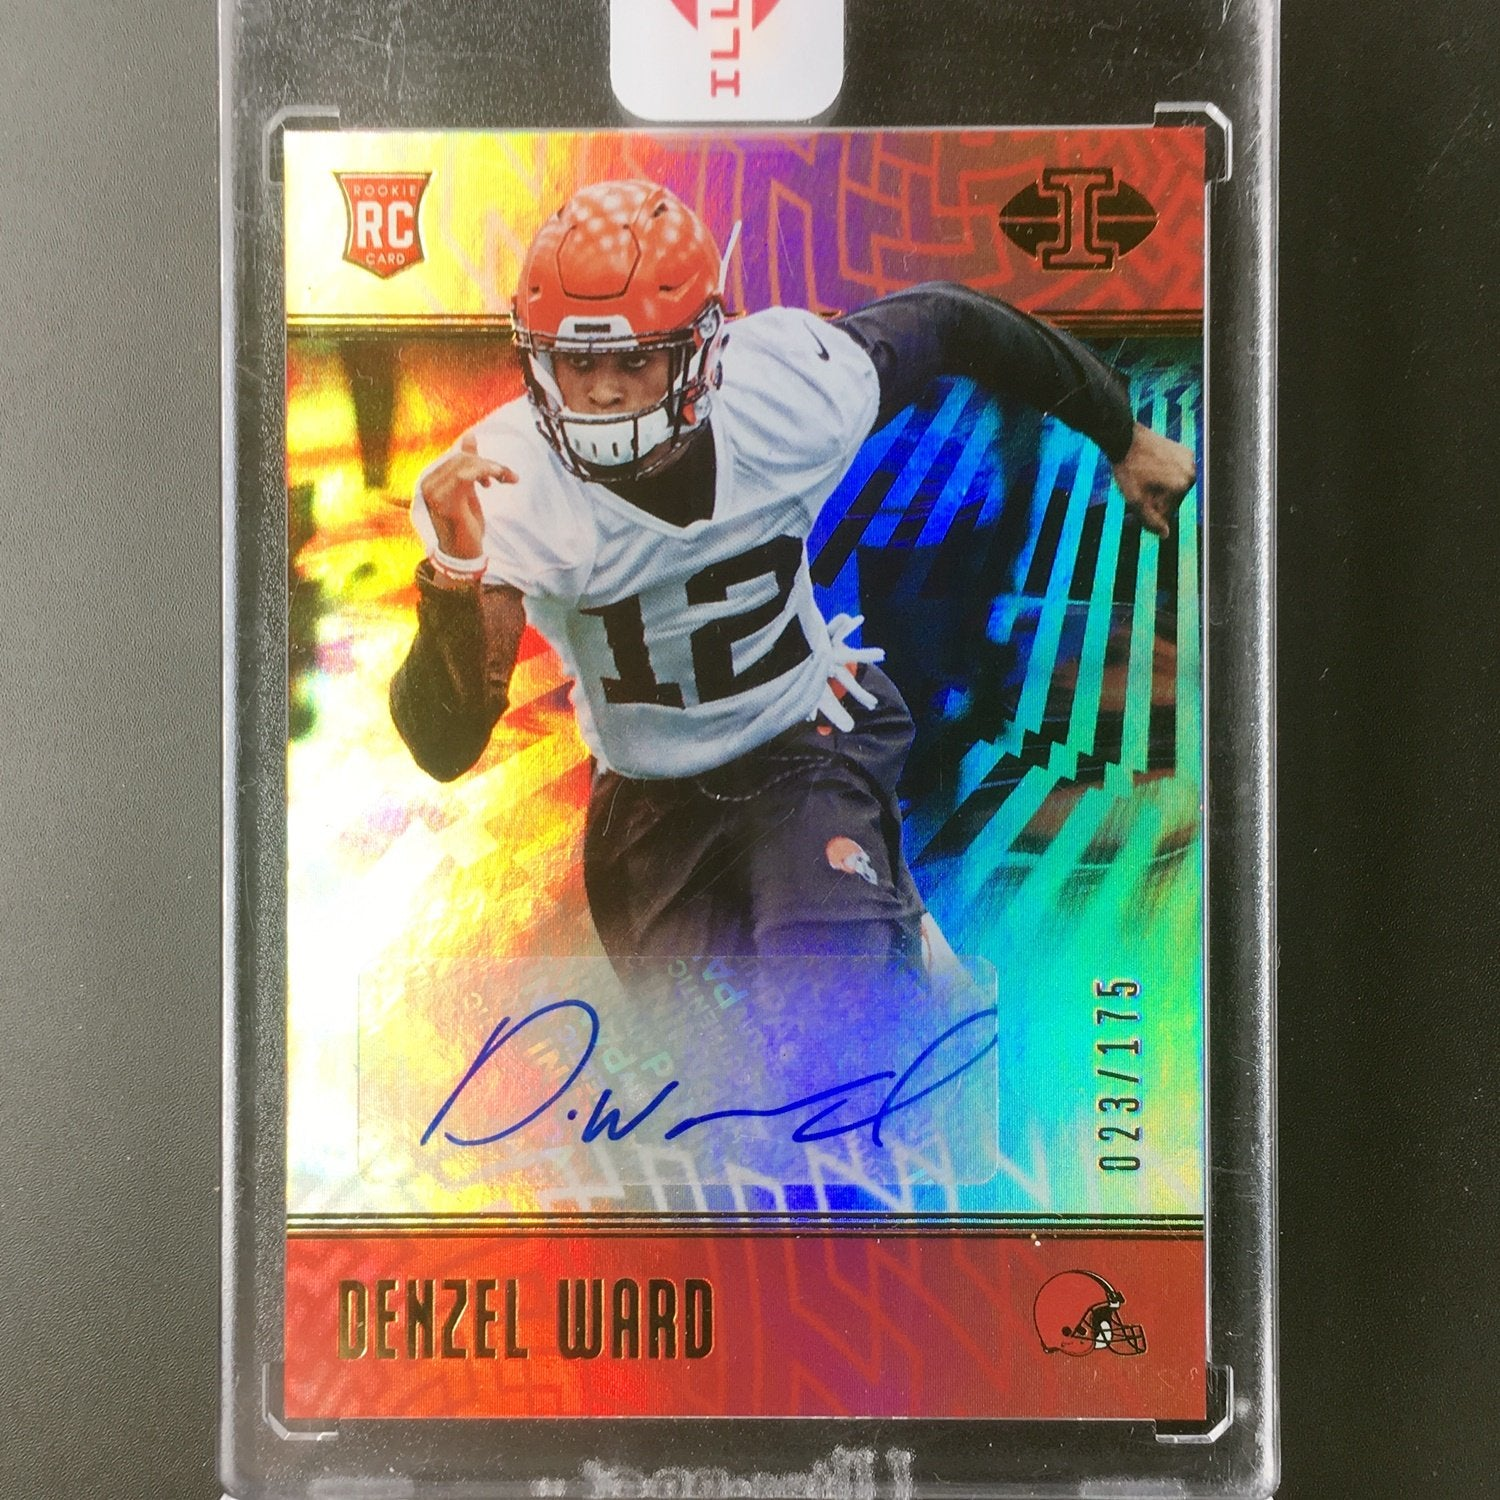 2018 Illusions DENZEL WARD Rookie Auto 23/175-Cherry Collectables